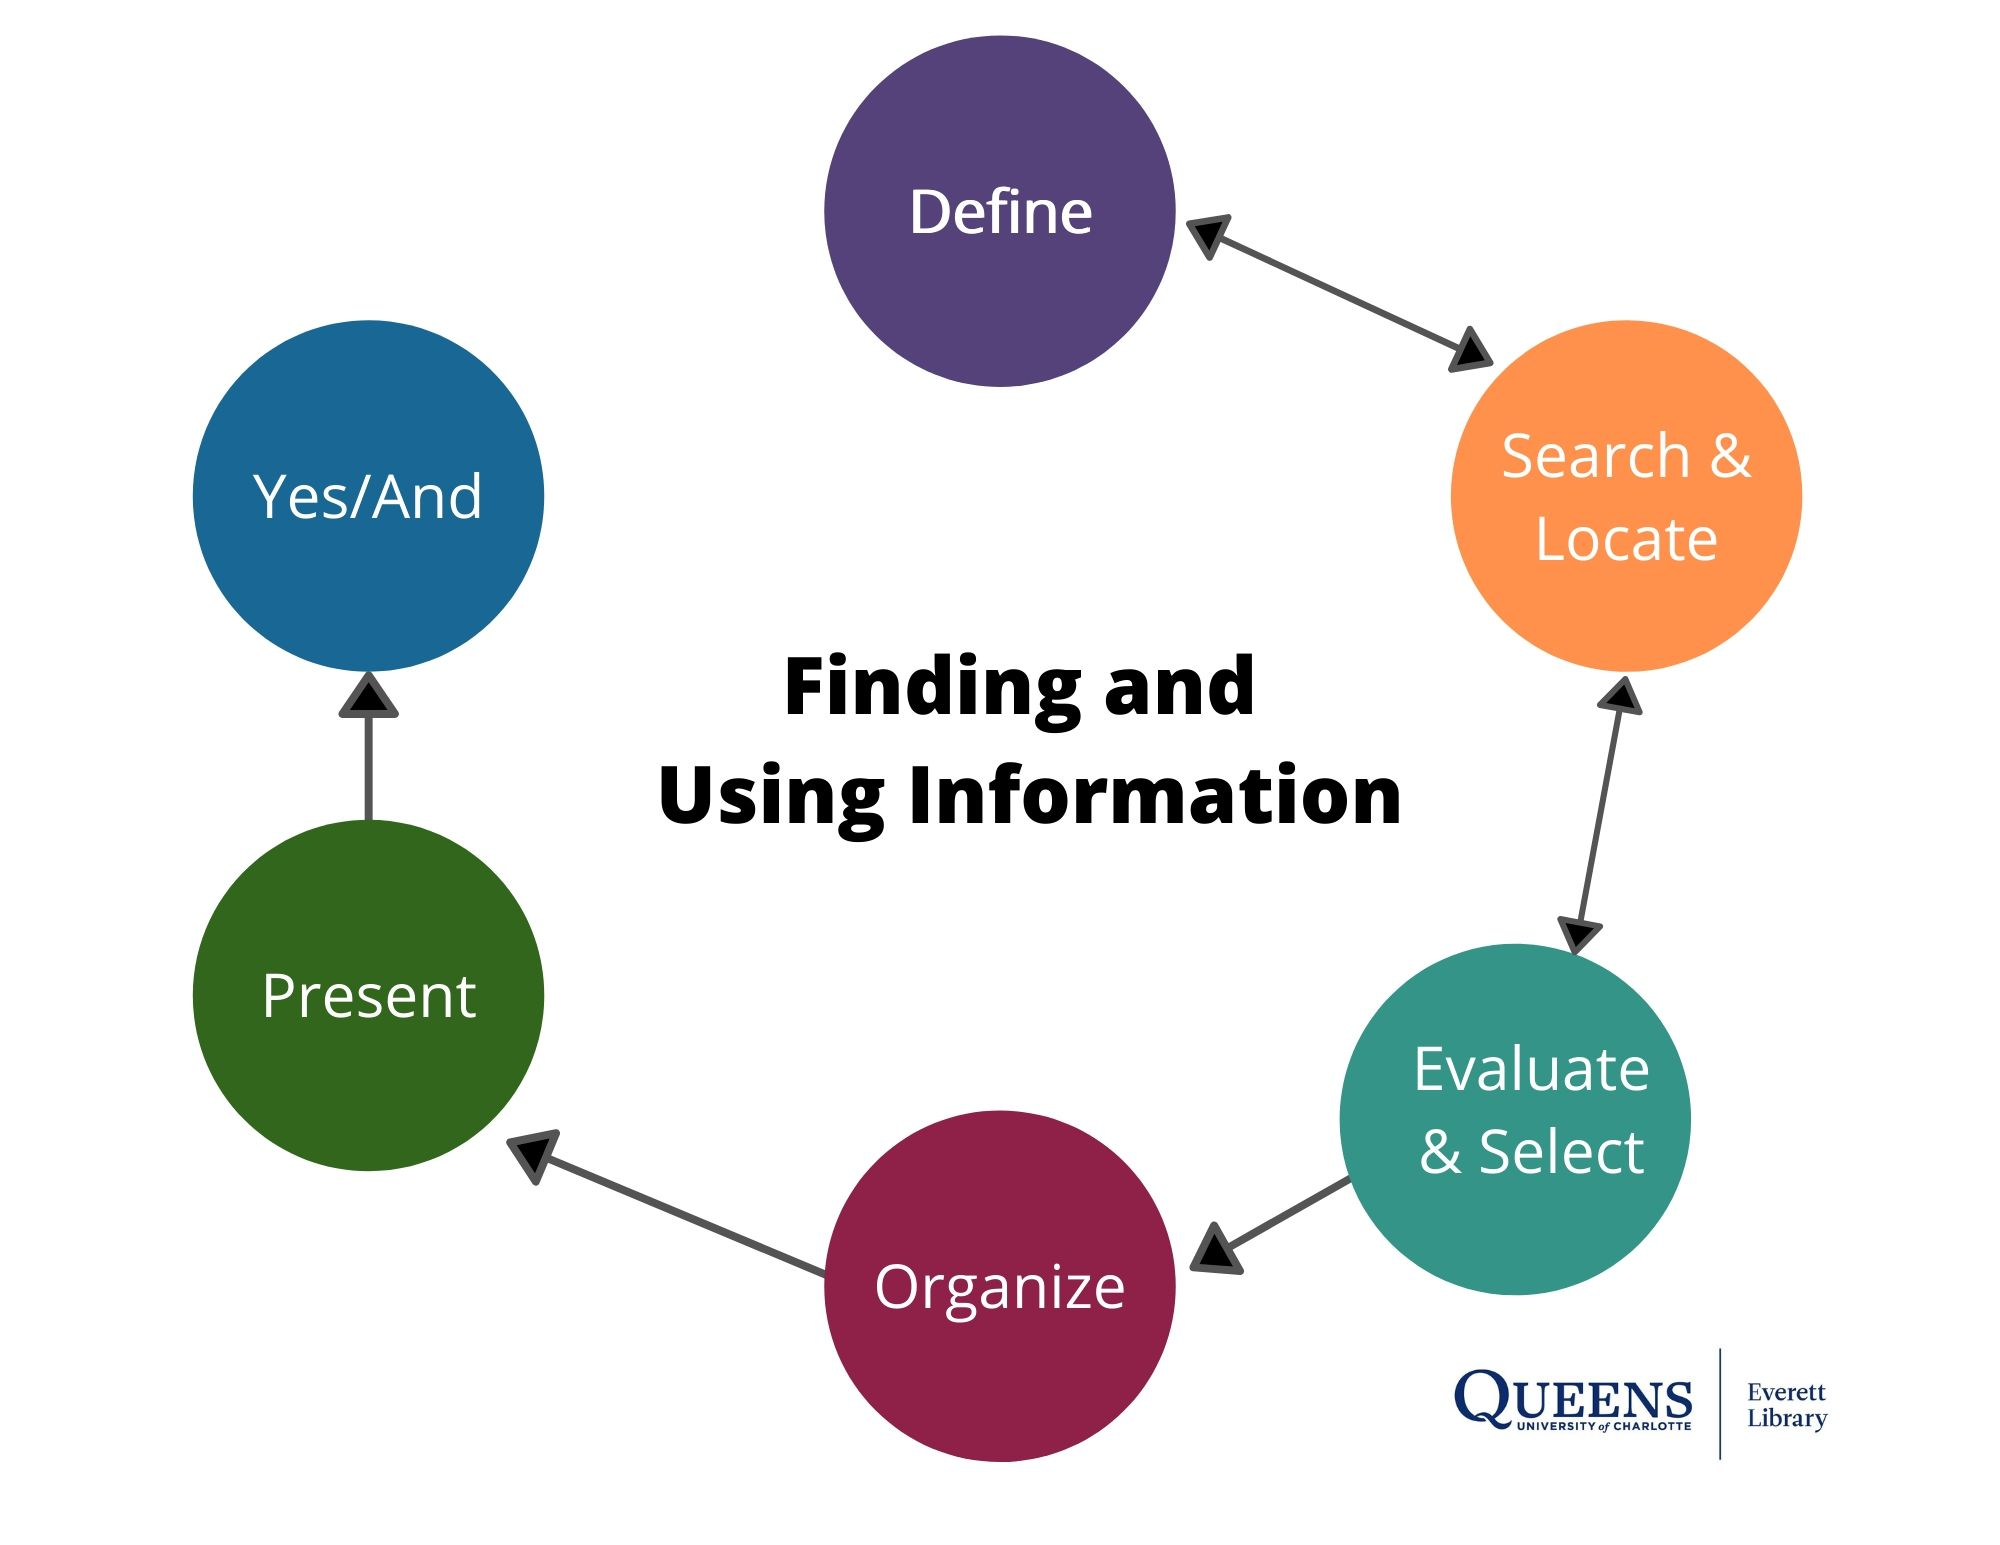 Define - Locate - Evaluate & Select - Organize - Present - Yes/And